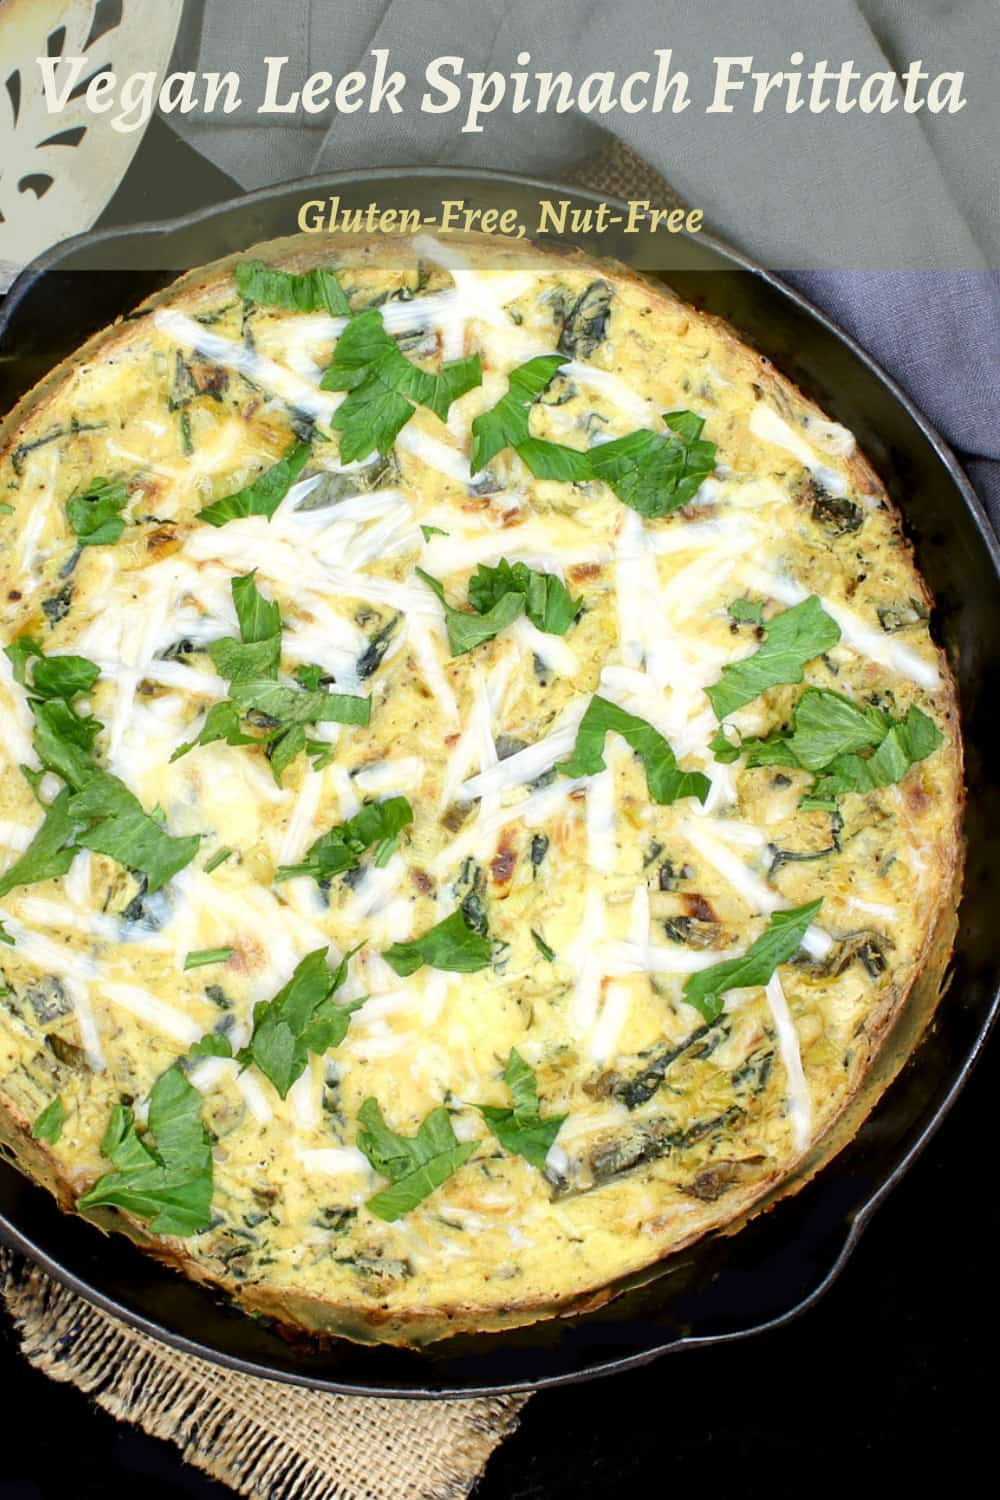 Here's a simple vegan Leek and Spinach Frittata with fresh leeks and spinach wrapped in a savory, creamy, herby custard of tofu and vegan cheese. It's a delicious, protein-packed meal you can devour any time of day. A nut-free and gluten-free recipe. #vegan, #frittata, #eggless, #veggies | HolyCowVegan.net